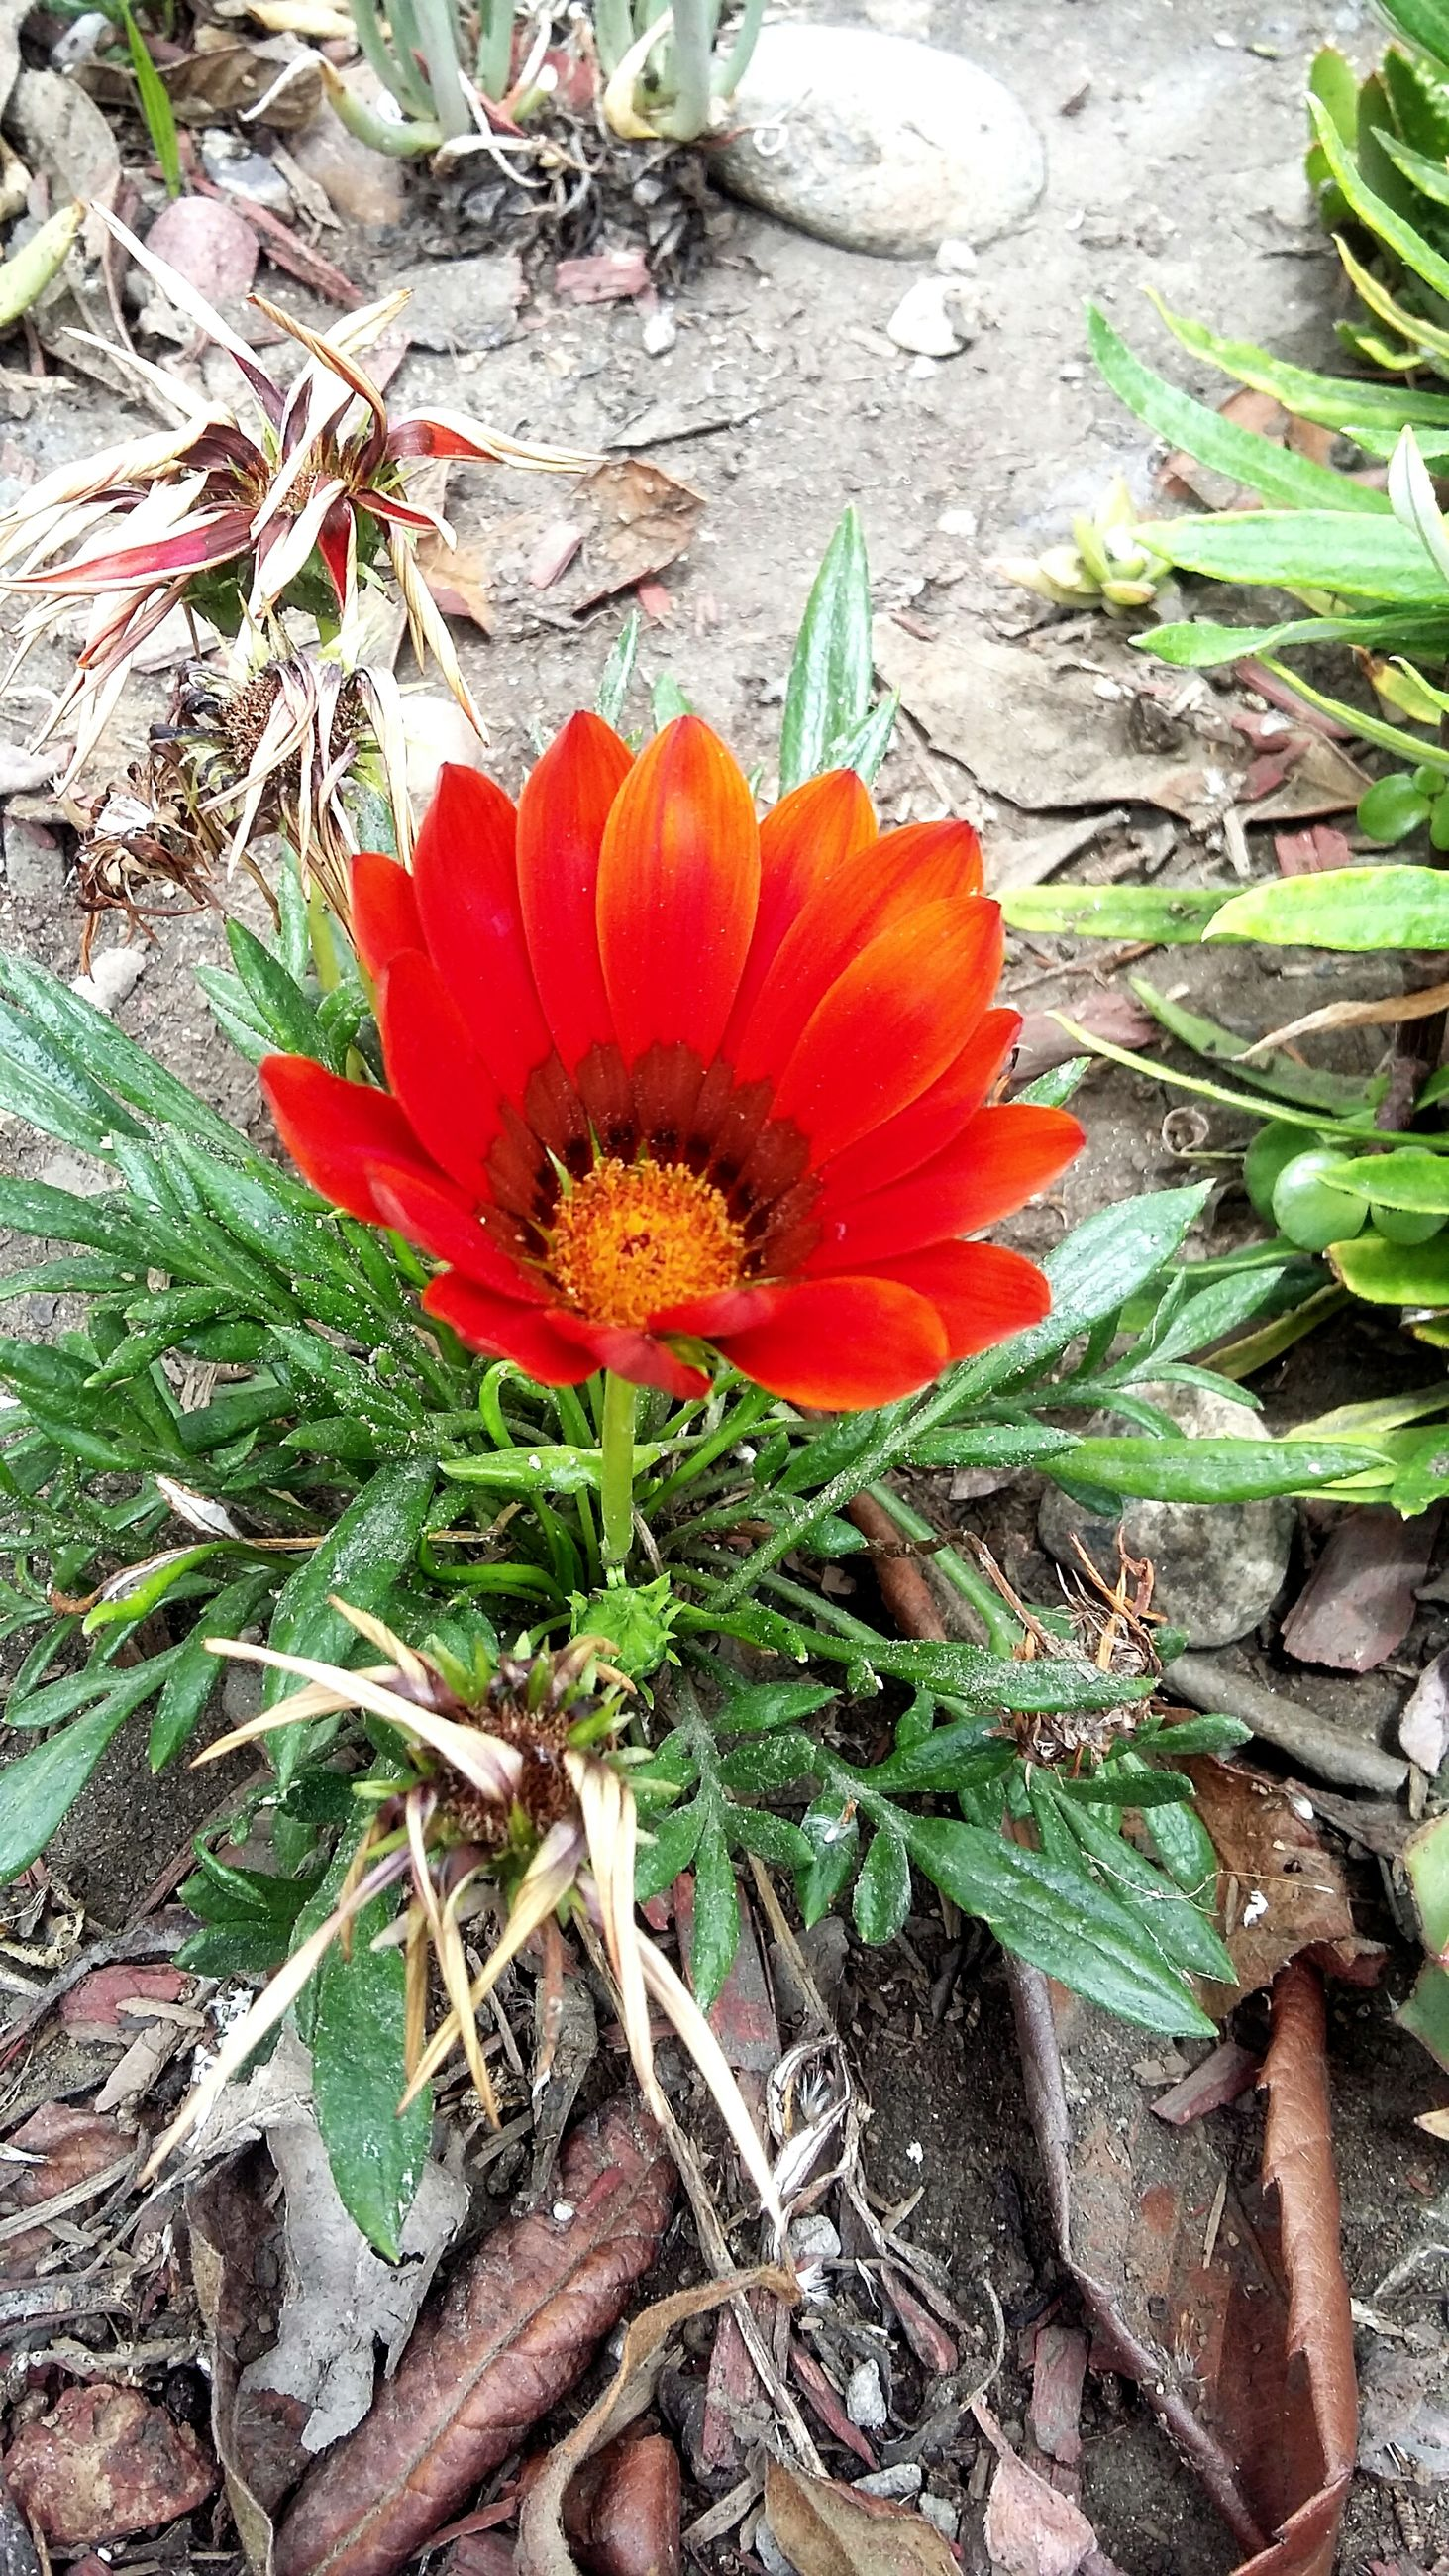 flower, growth, fragility, freshness, red, petal, flower head, plant, leaf, nature, beauty in nature, high angle view, close-up, orange color, blooming, single flower, day, outdoors, botany, in bloom